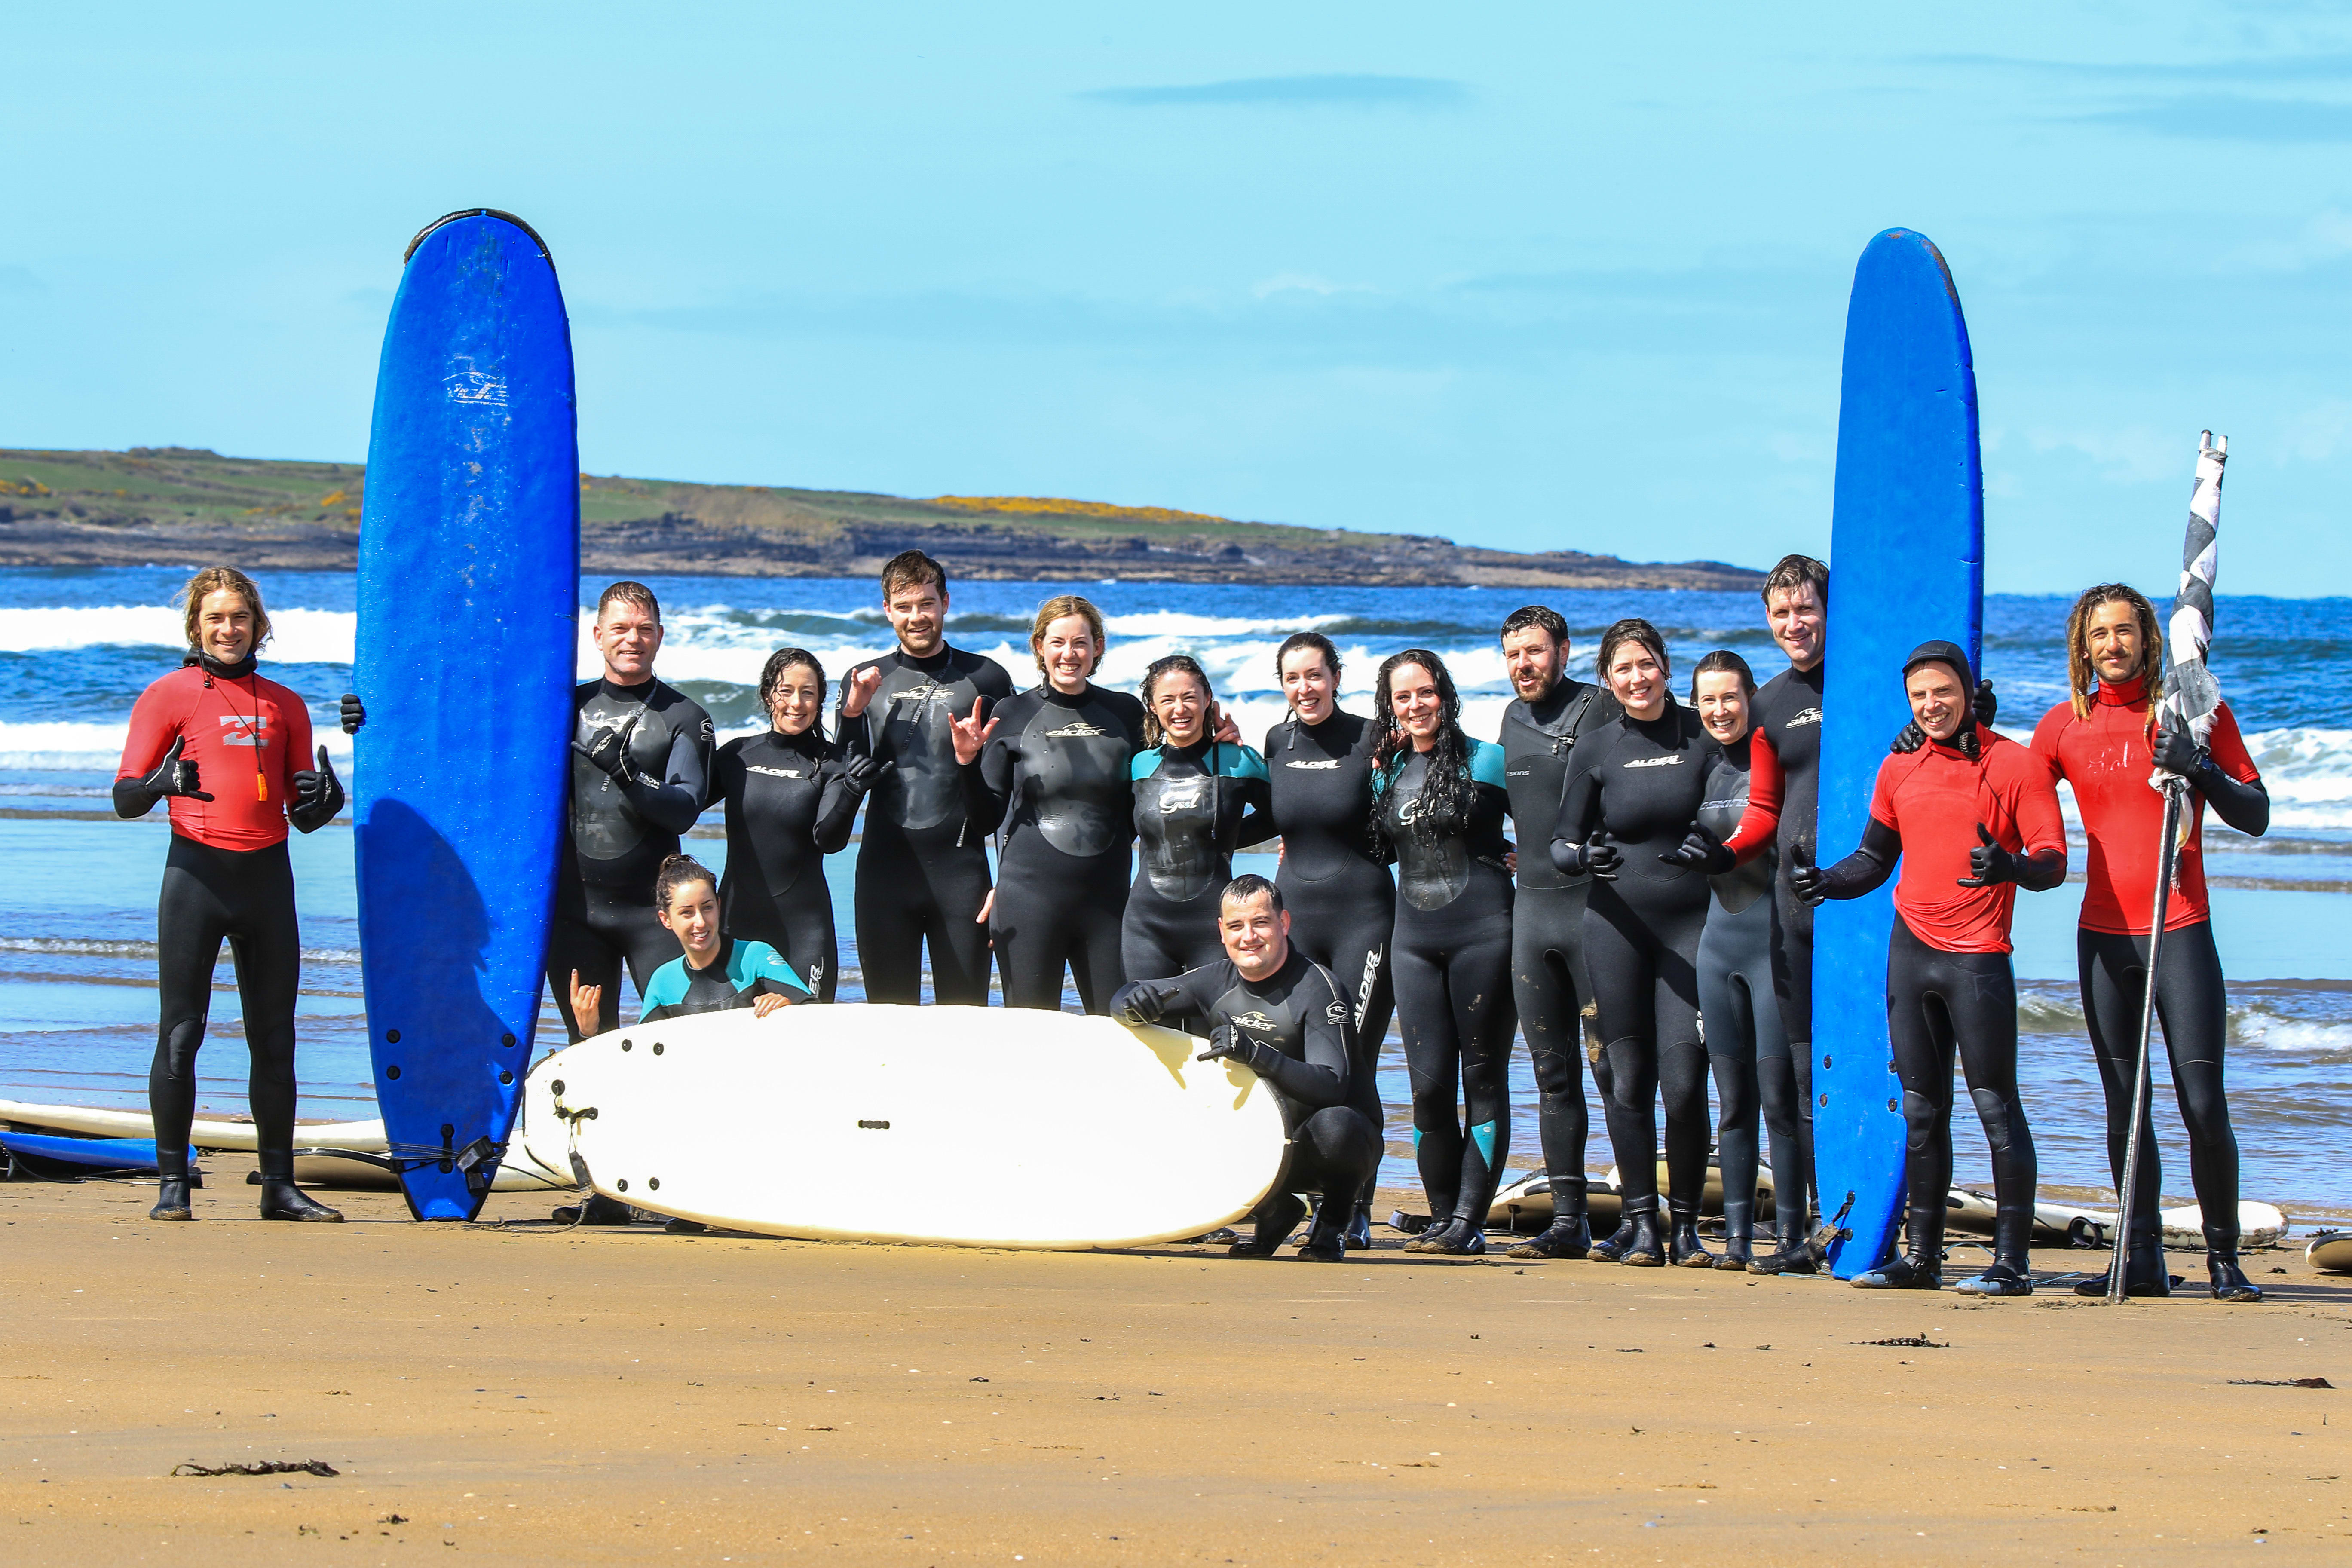 Strandhill Lodge & Surf School